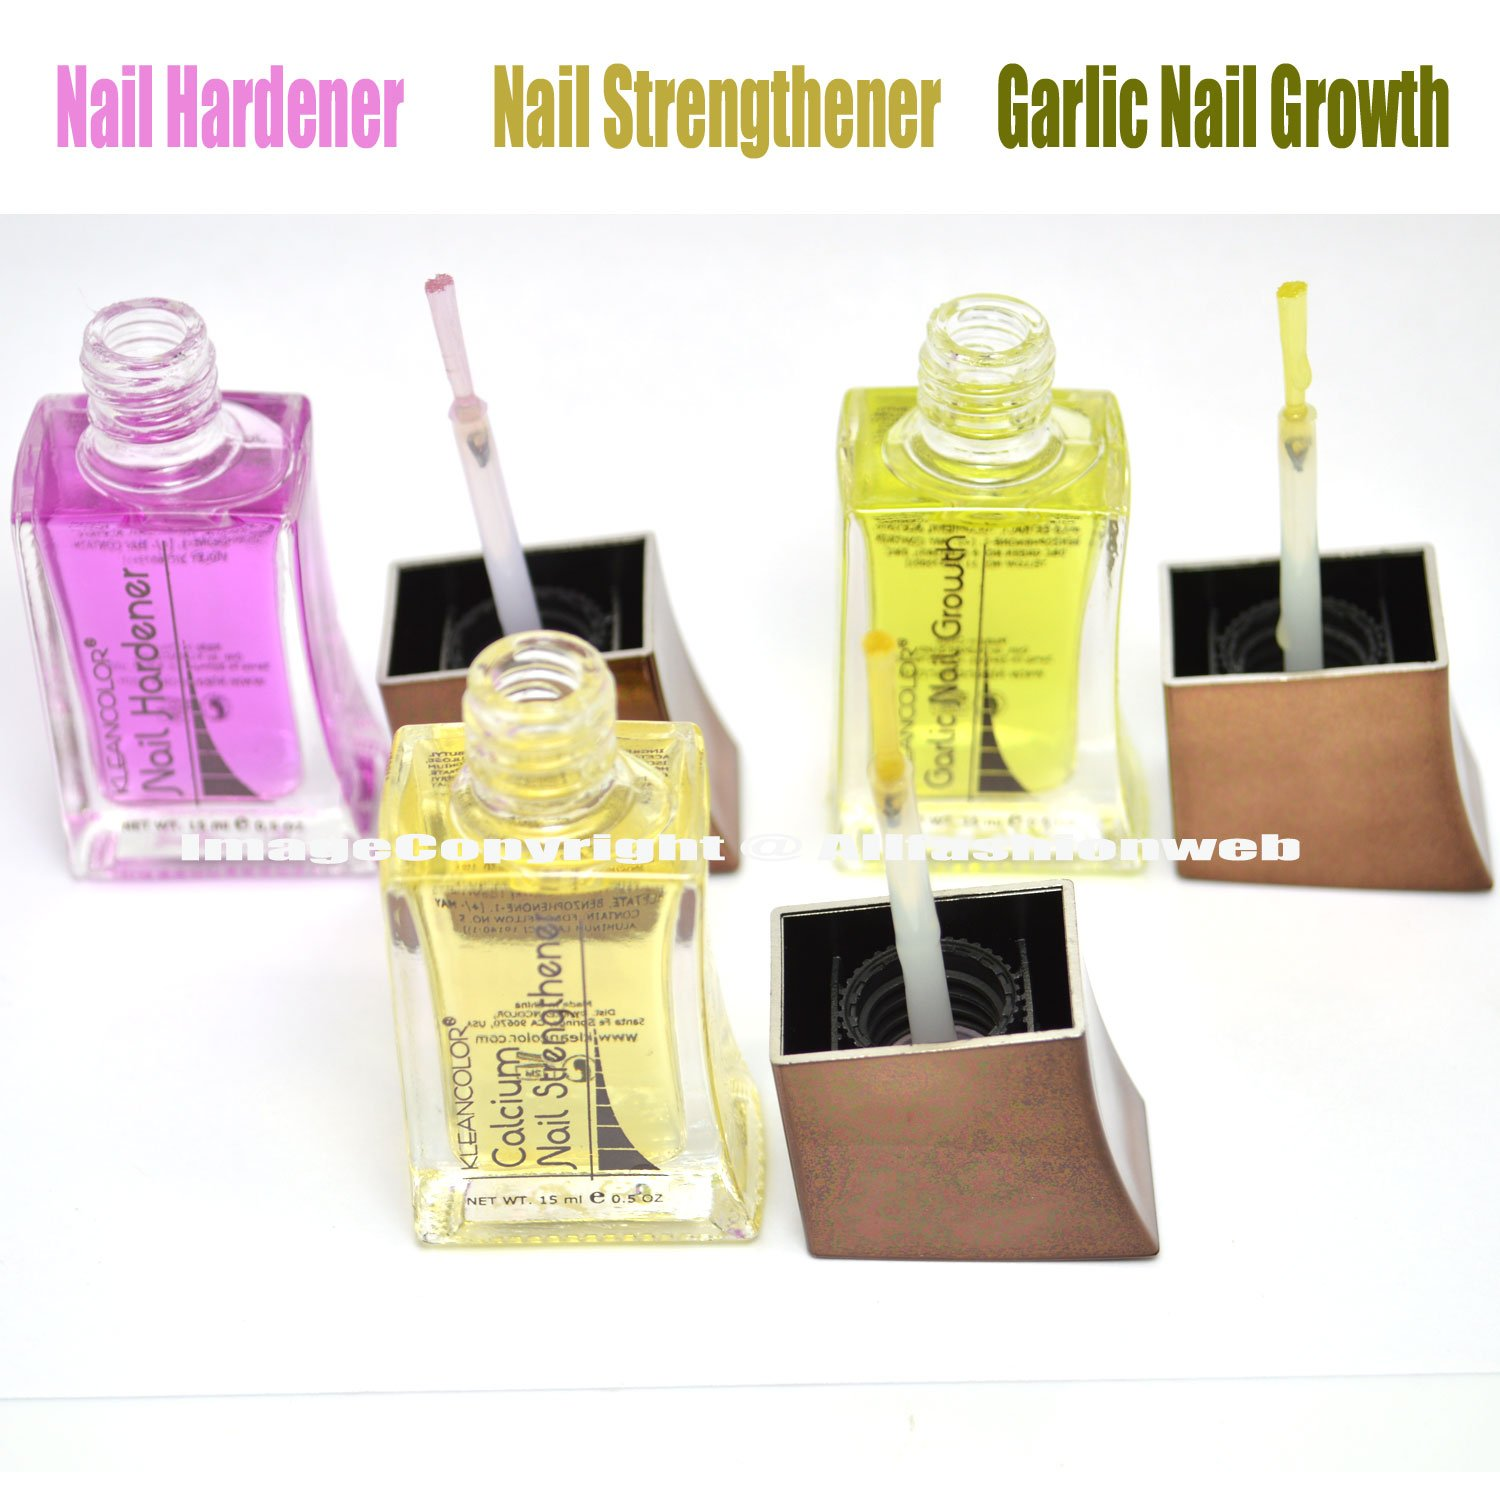 Buy 3 Kleancolor Nail Hardener, Strengthener, Garlic Growth Polish ...